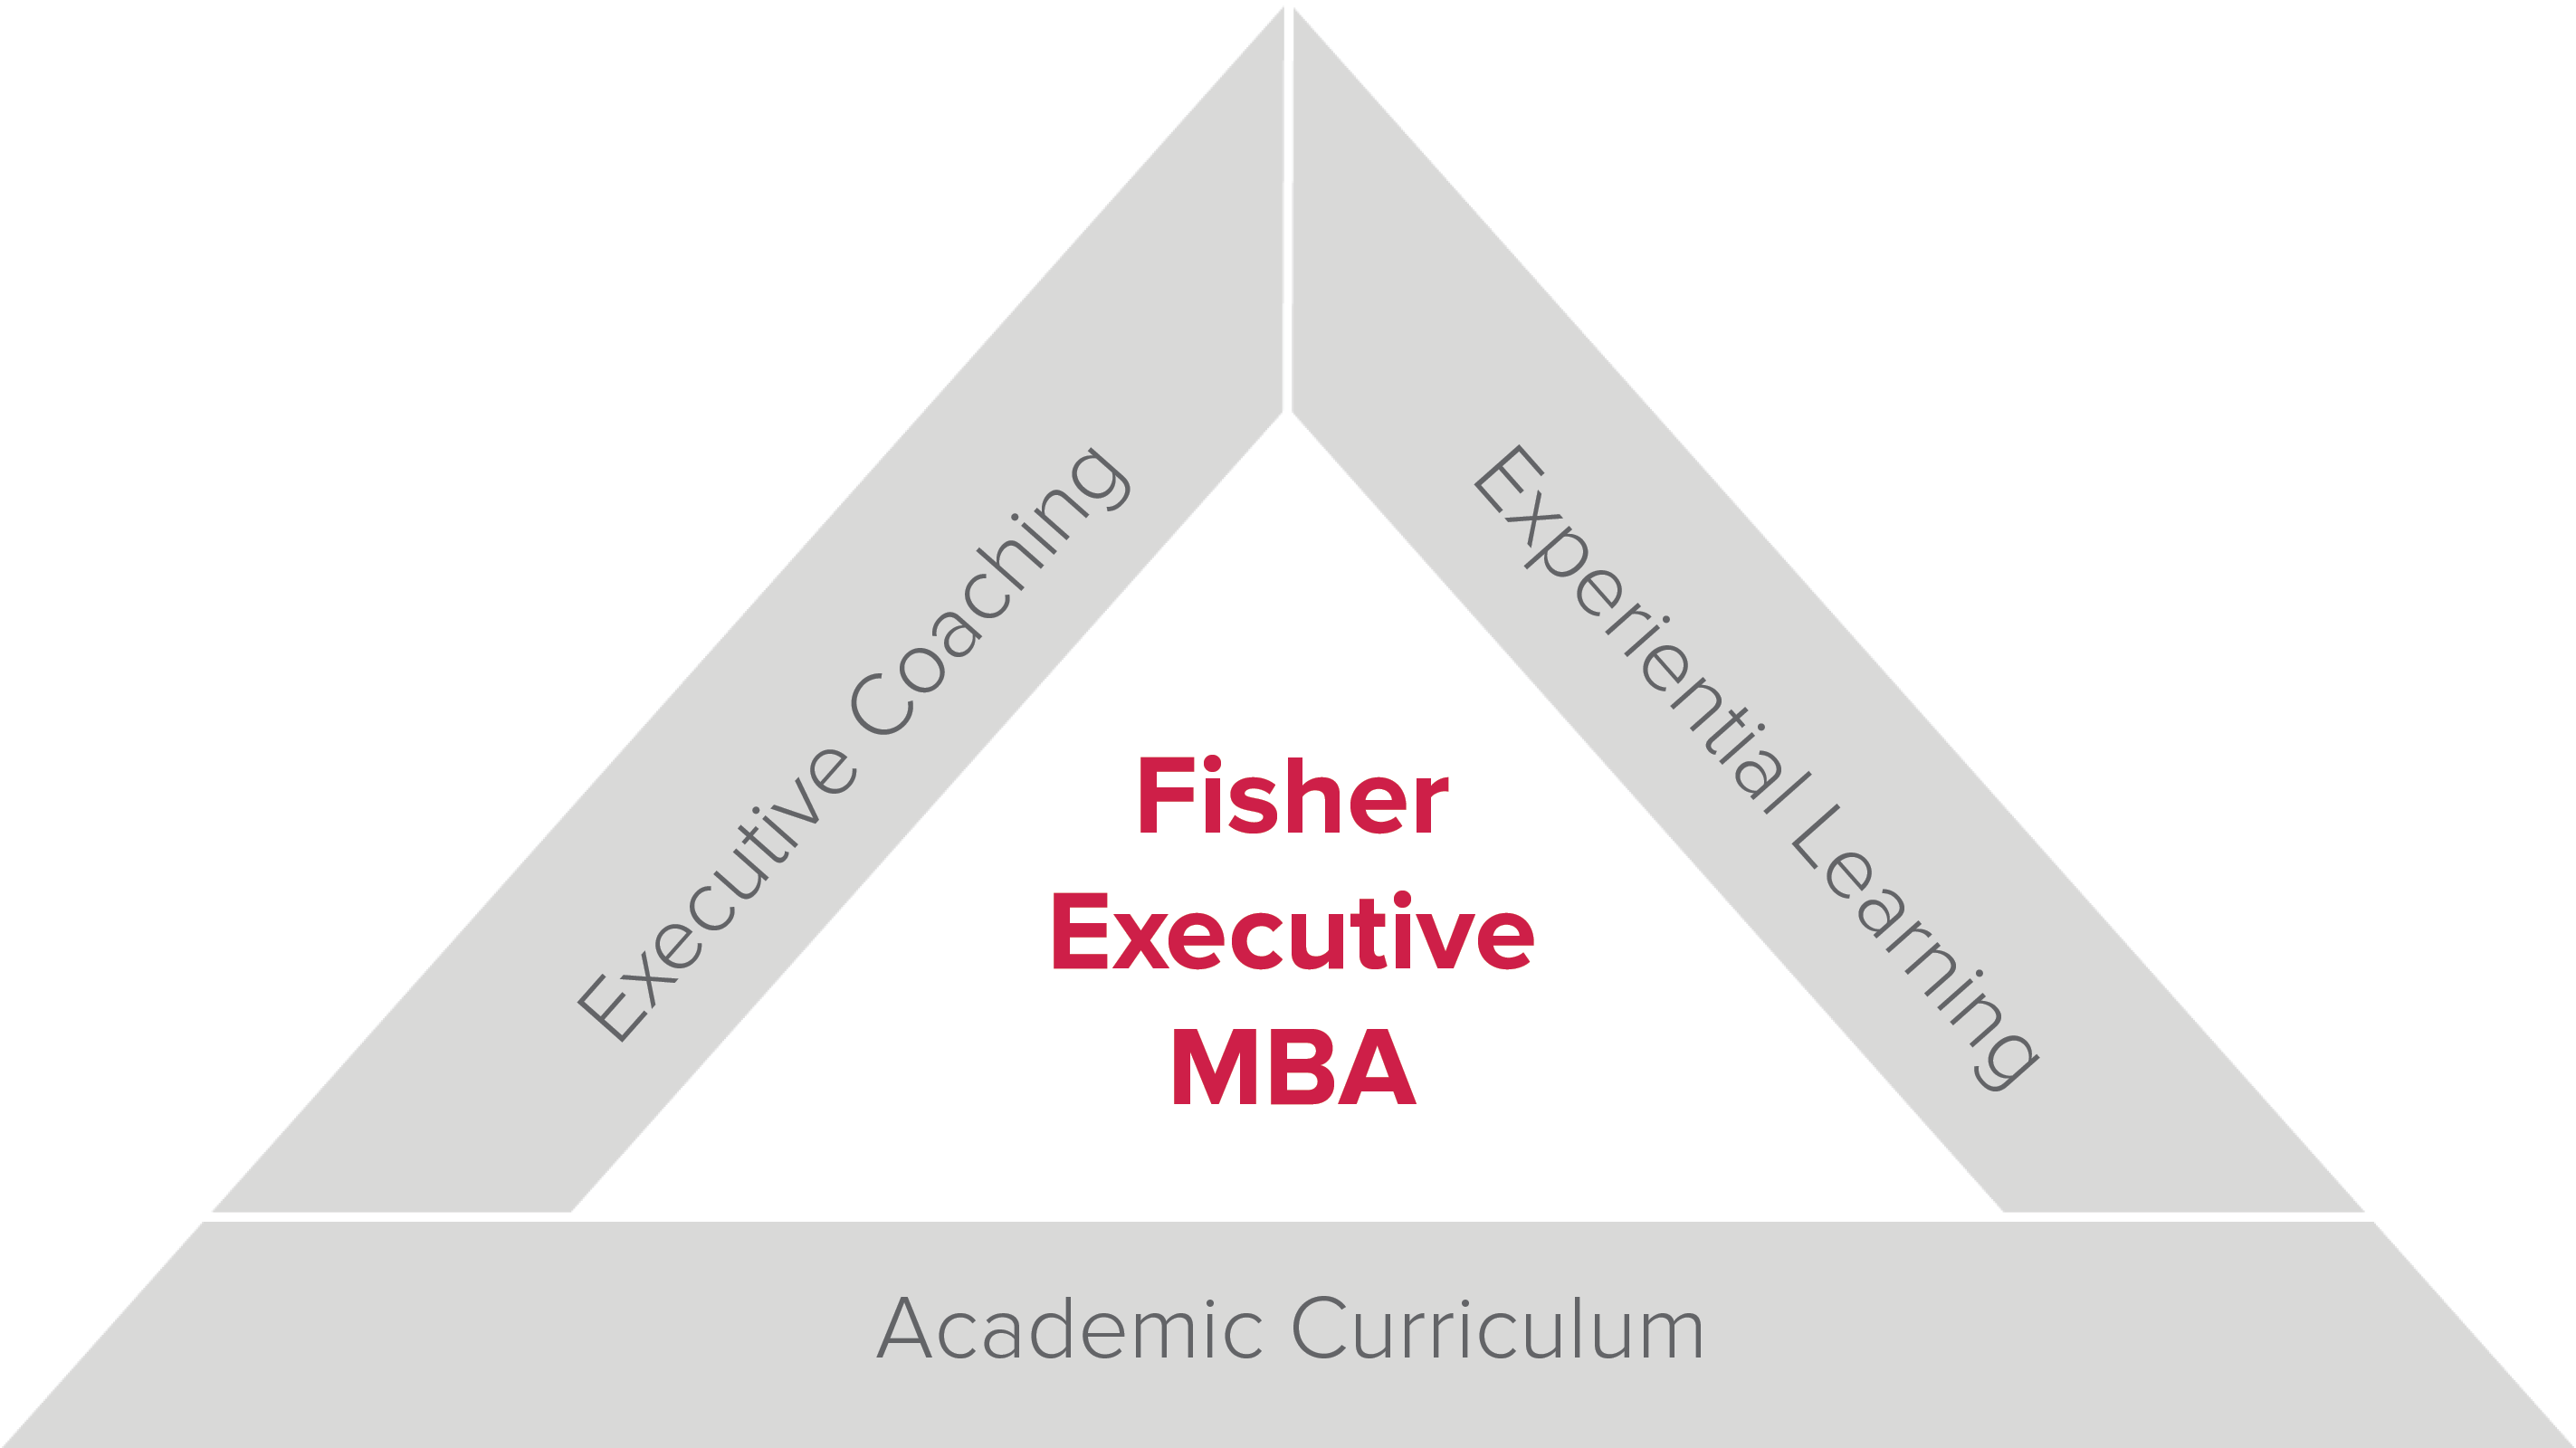 Fisher Executive MBA triad